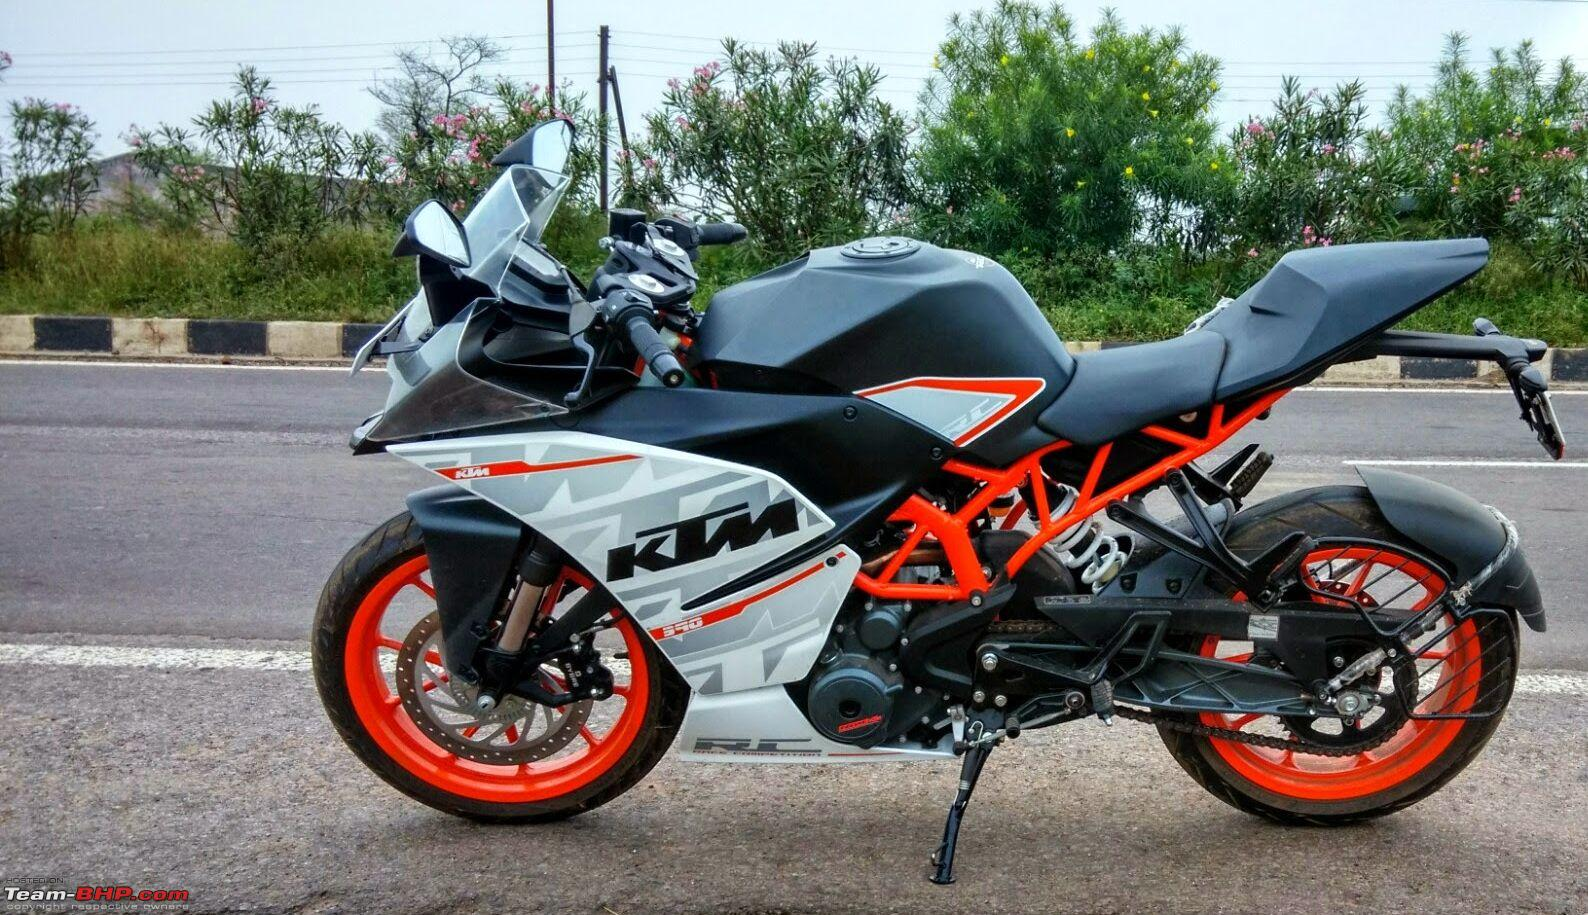 Ktm Rc 390 Hd Wallpapers Images And Photos Free Download